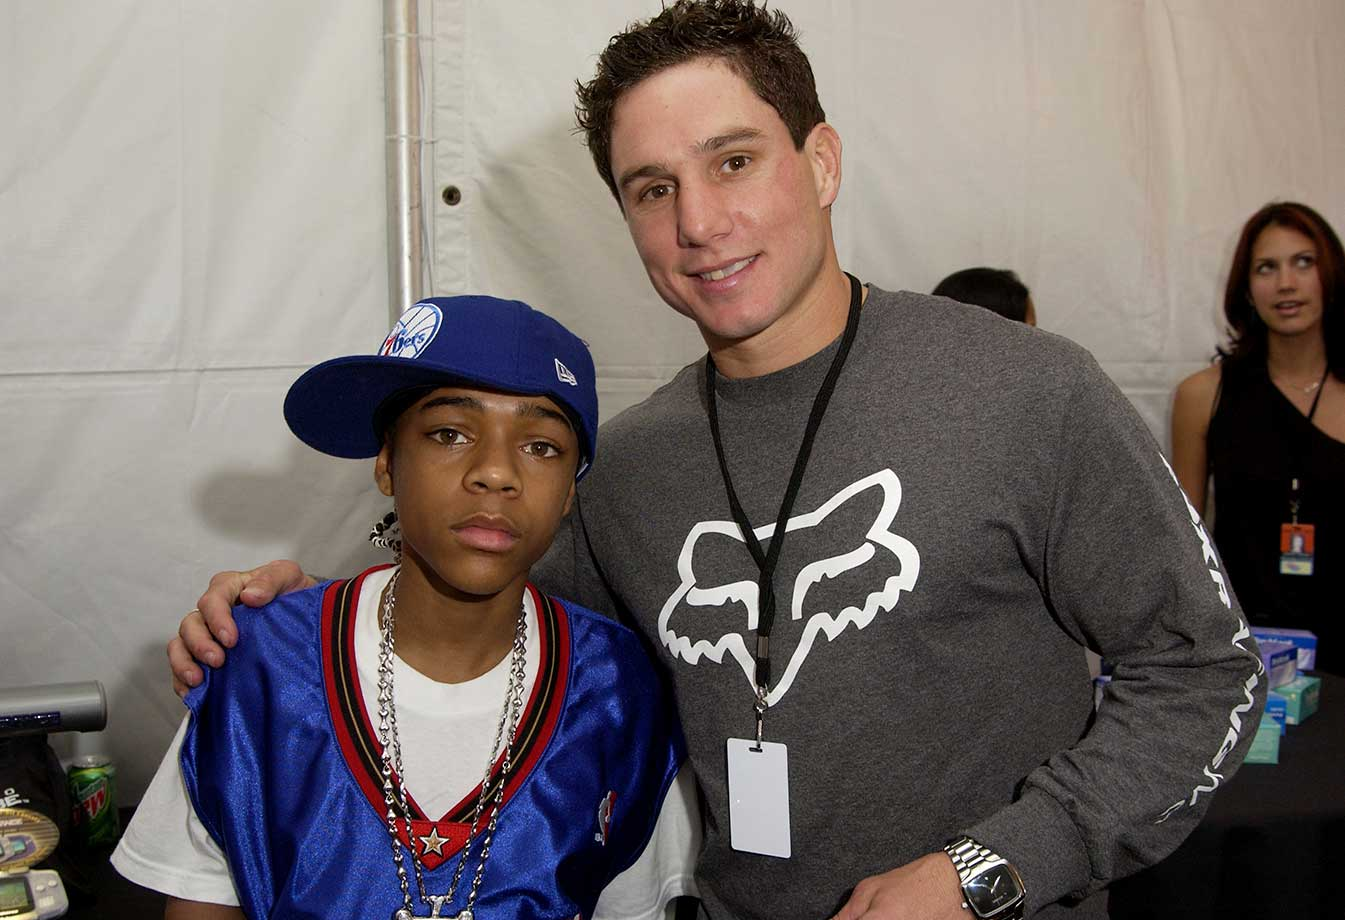 Lil' Bow Wow and Dave Mirra during Nickelodeon's 15th Annual Kids Choice Awards.